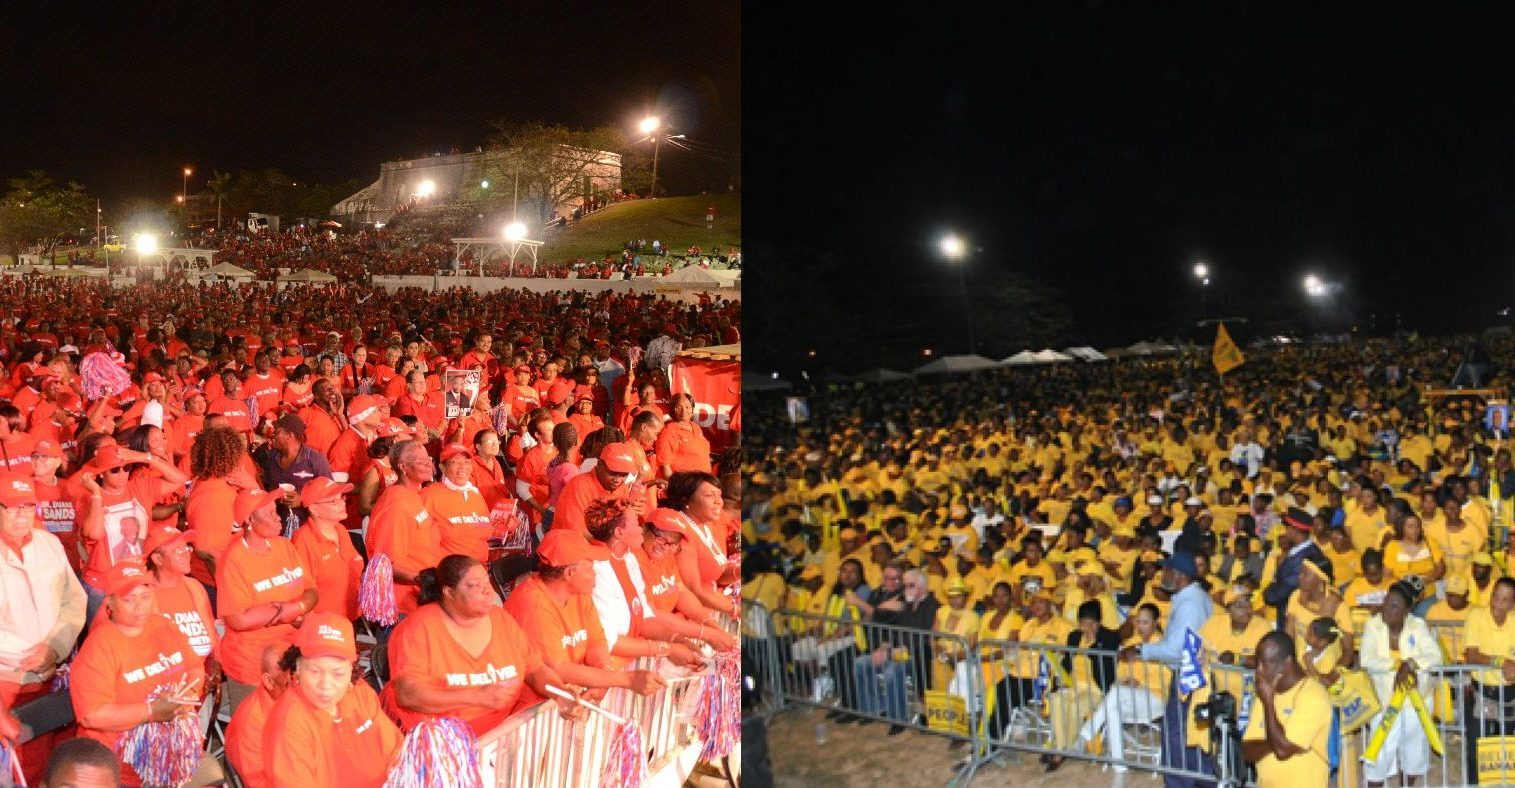 No decision yet on FNM, PLP conventions